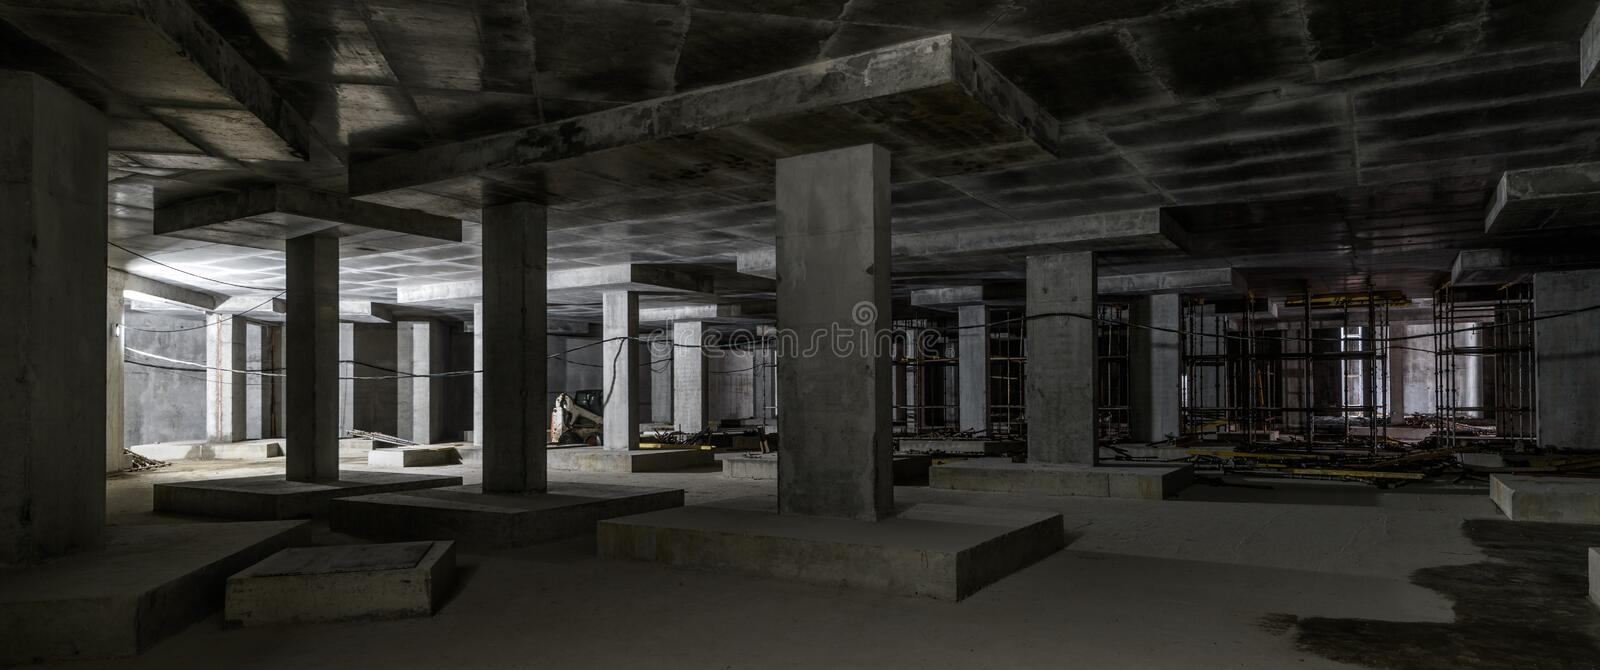 Concrete construction of basement of large building royalty free stock photos